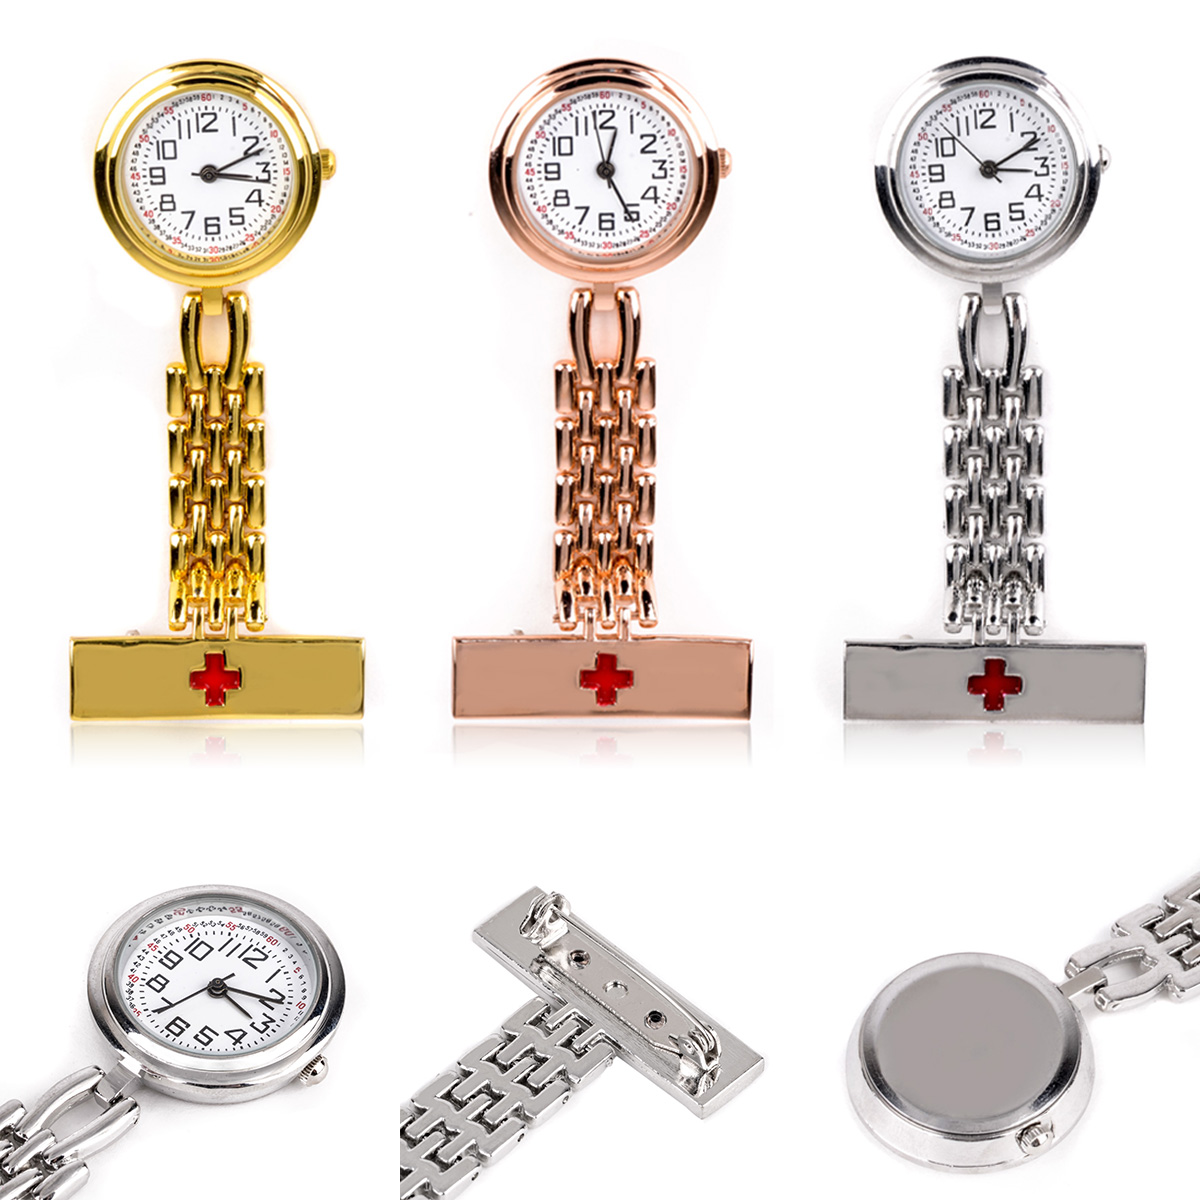 Shellhard Round Dial Red Cross Nurse Watches 3 Colors Brooch Fob Quartz Nurse Clip on Hanging Medical Pocket Watch